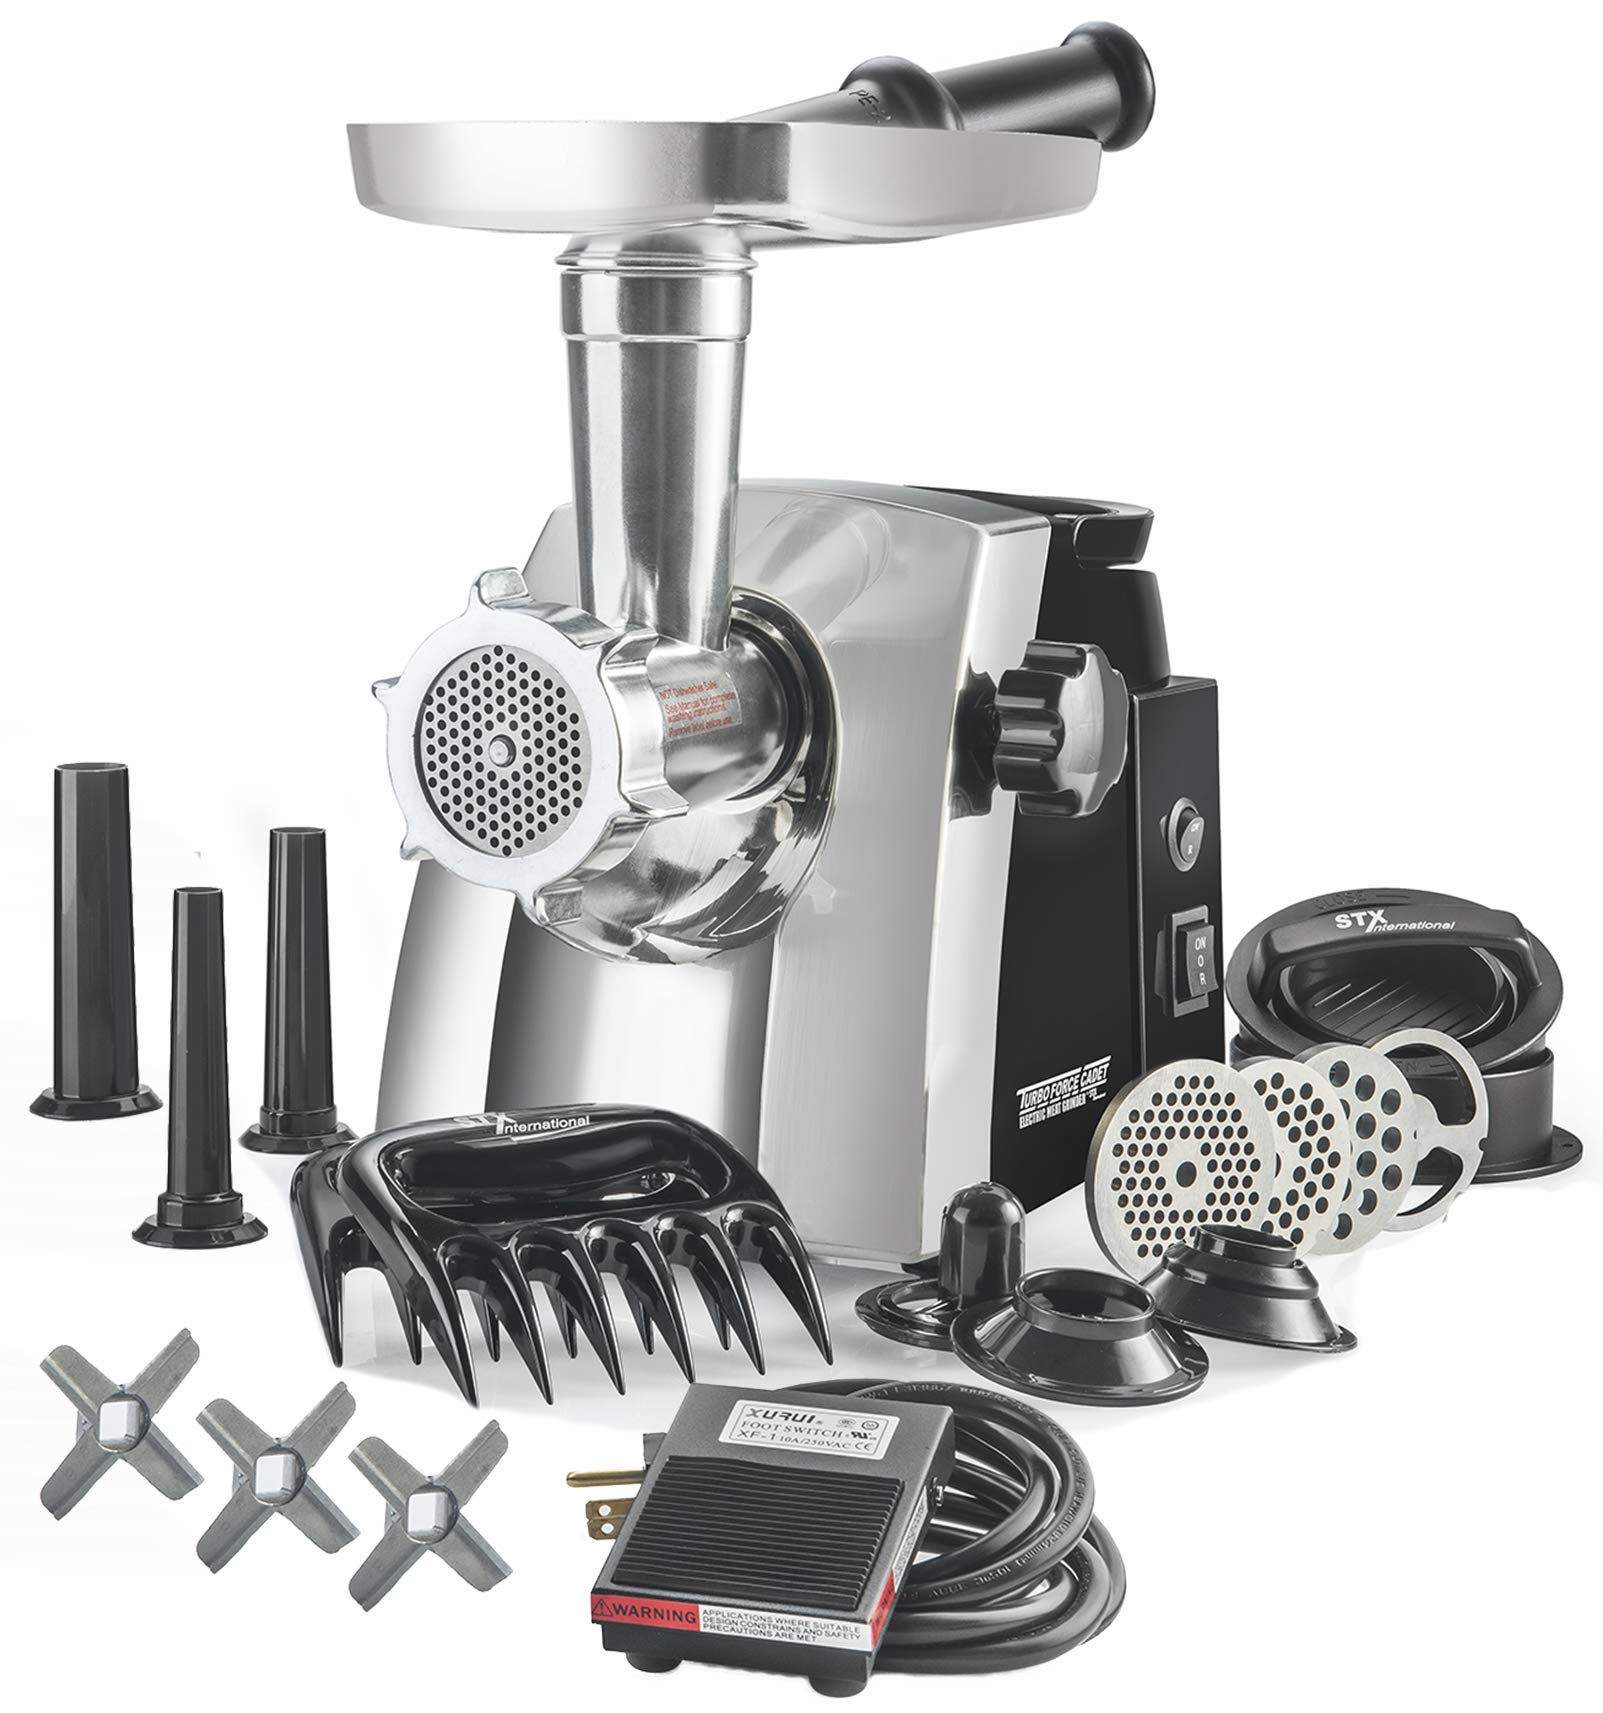 STX Turboforce Cadet - Platinum Edition w/Foot Pedal - Electric Meat Grinder & Sausage Stuffer - The Compact Titan of Grinders with AVI Feed Technology, High Volume Feed Tray, 120 Lbs/Hour Plus More! by STX INTERNATIONAL